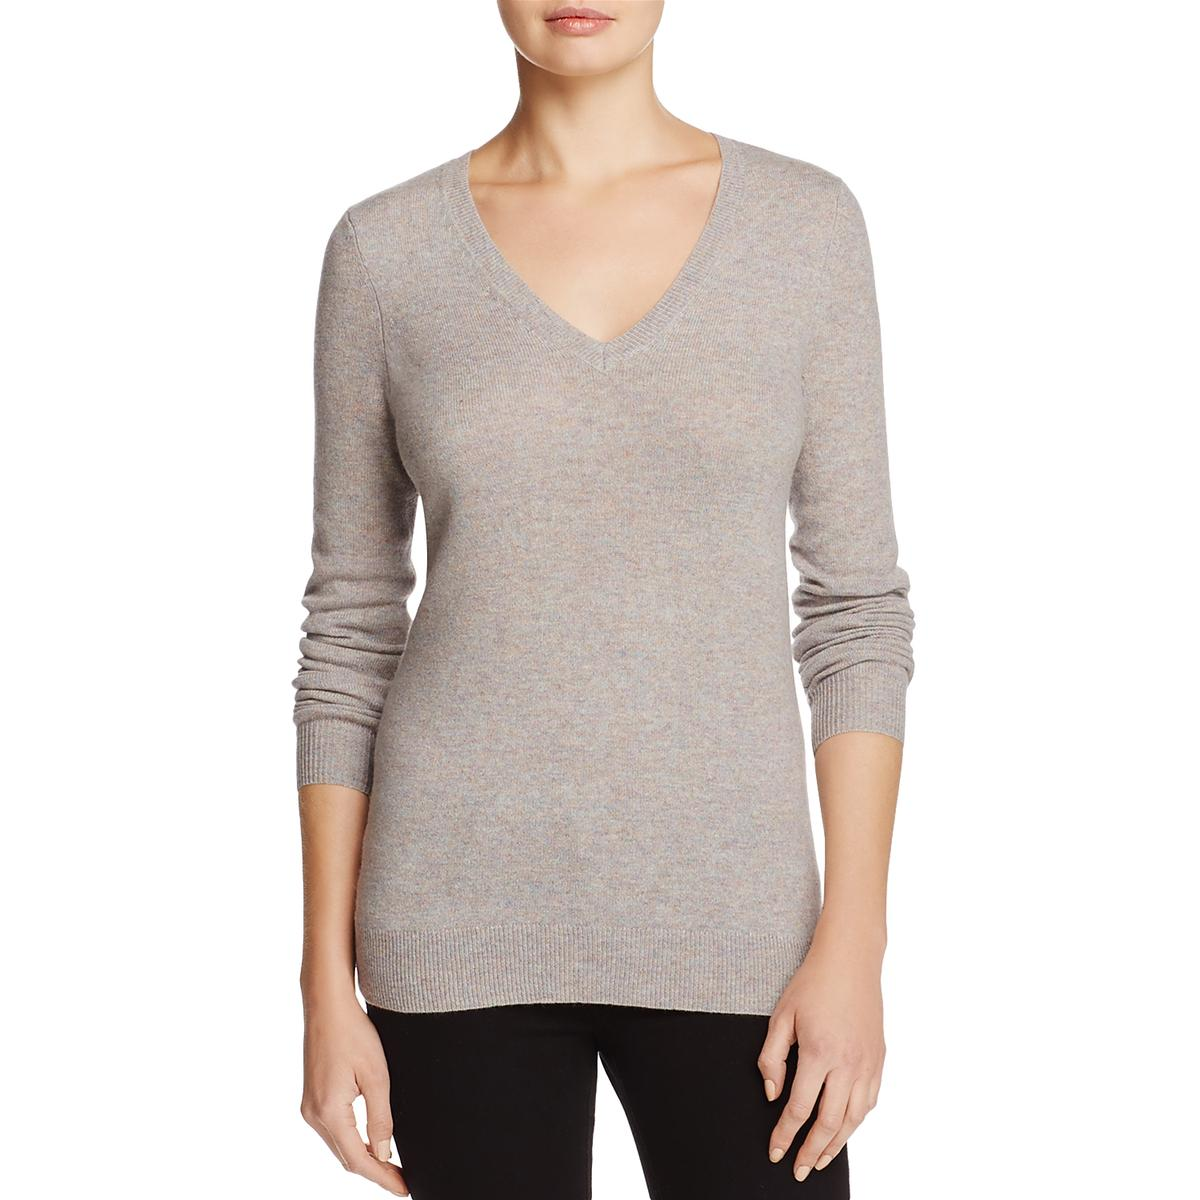 690a7665938 Details about Private Label Womens Gray Cashmere Long Sleeves Pullover  Sweater Top M BHFO 2561